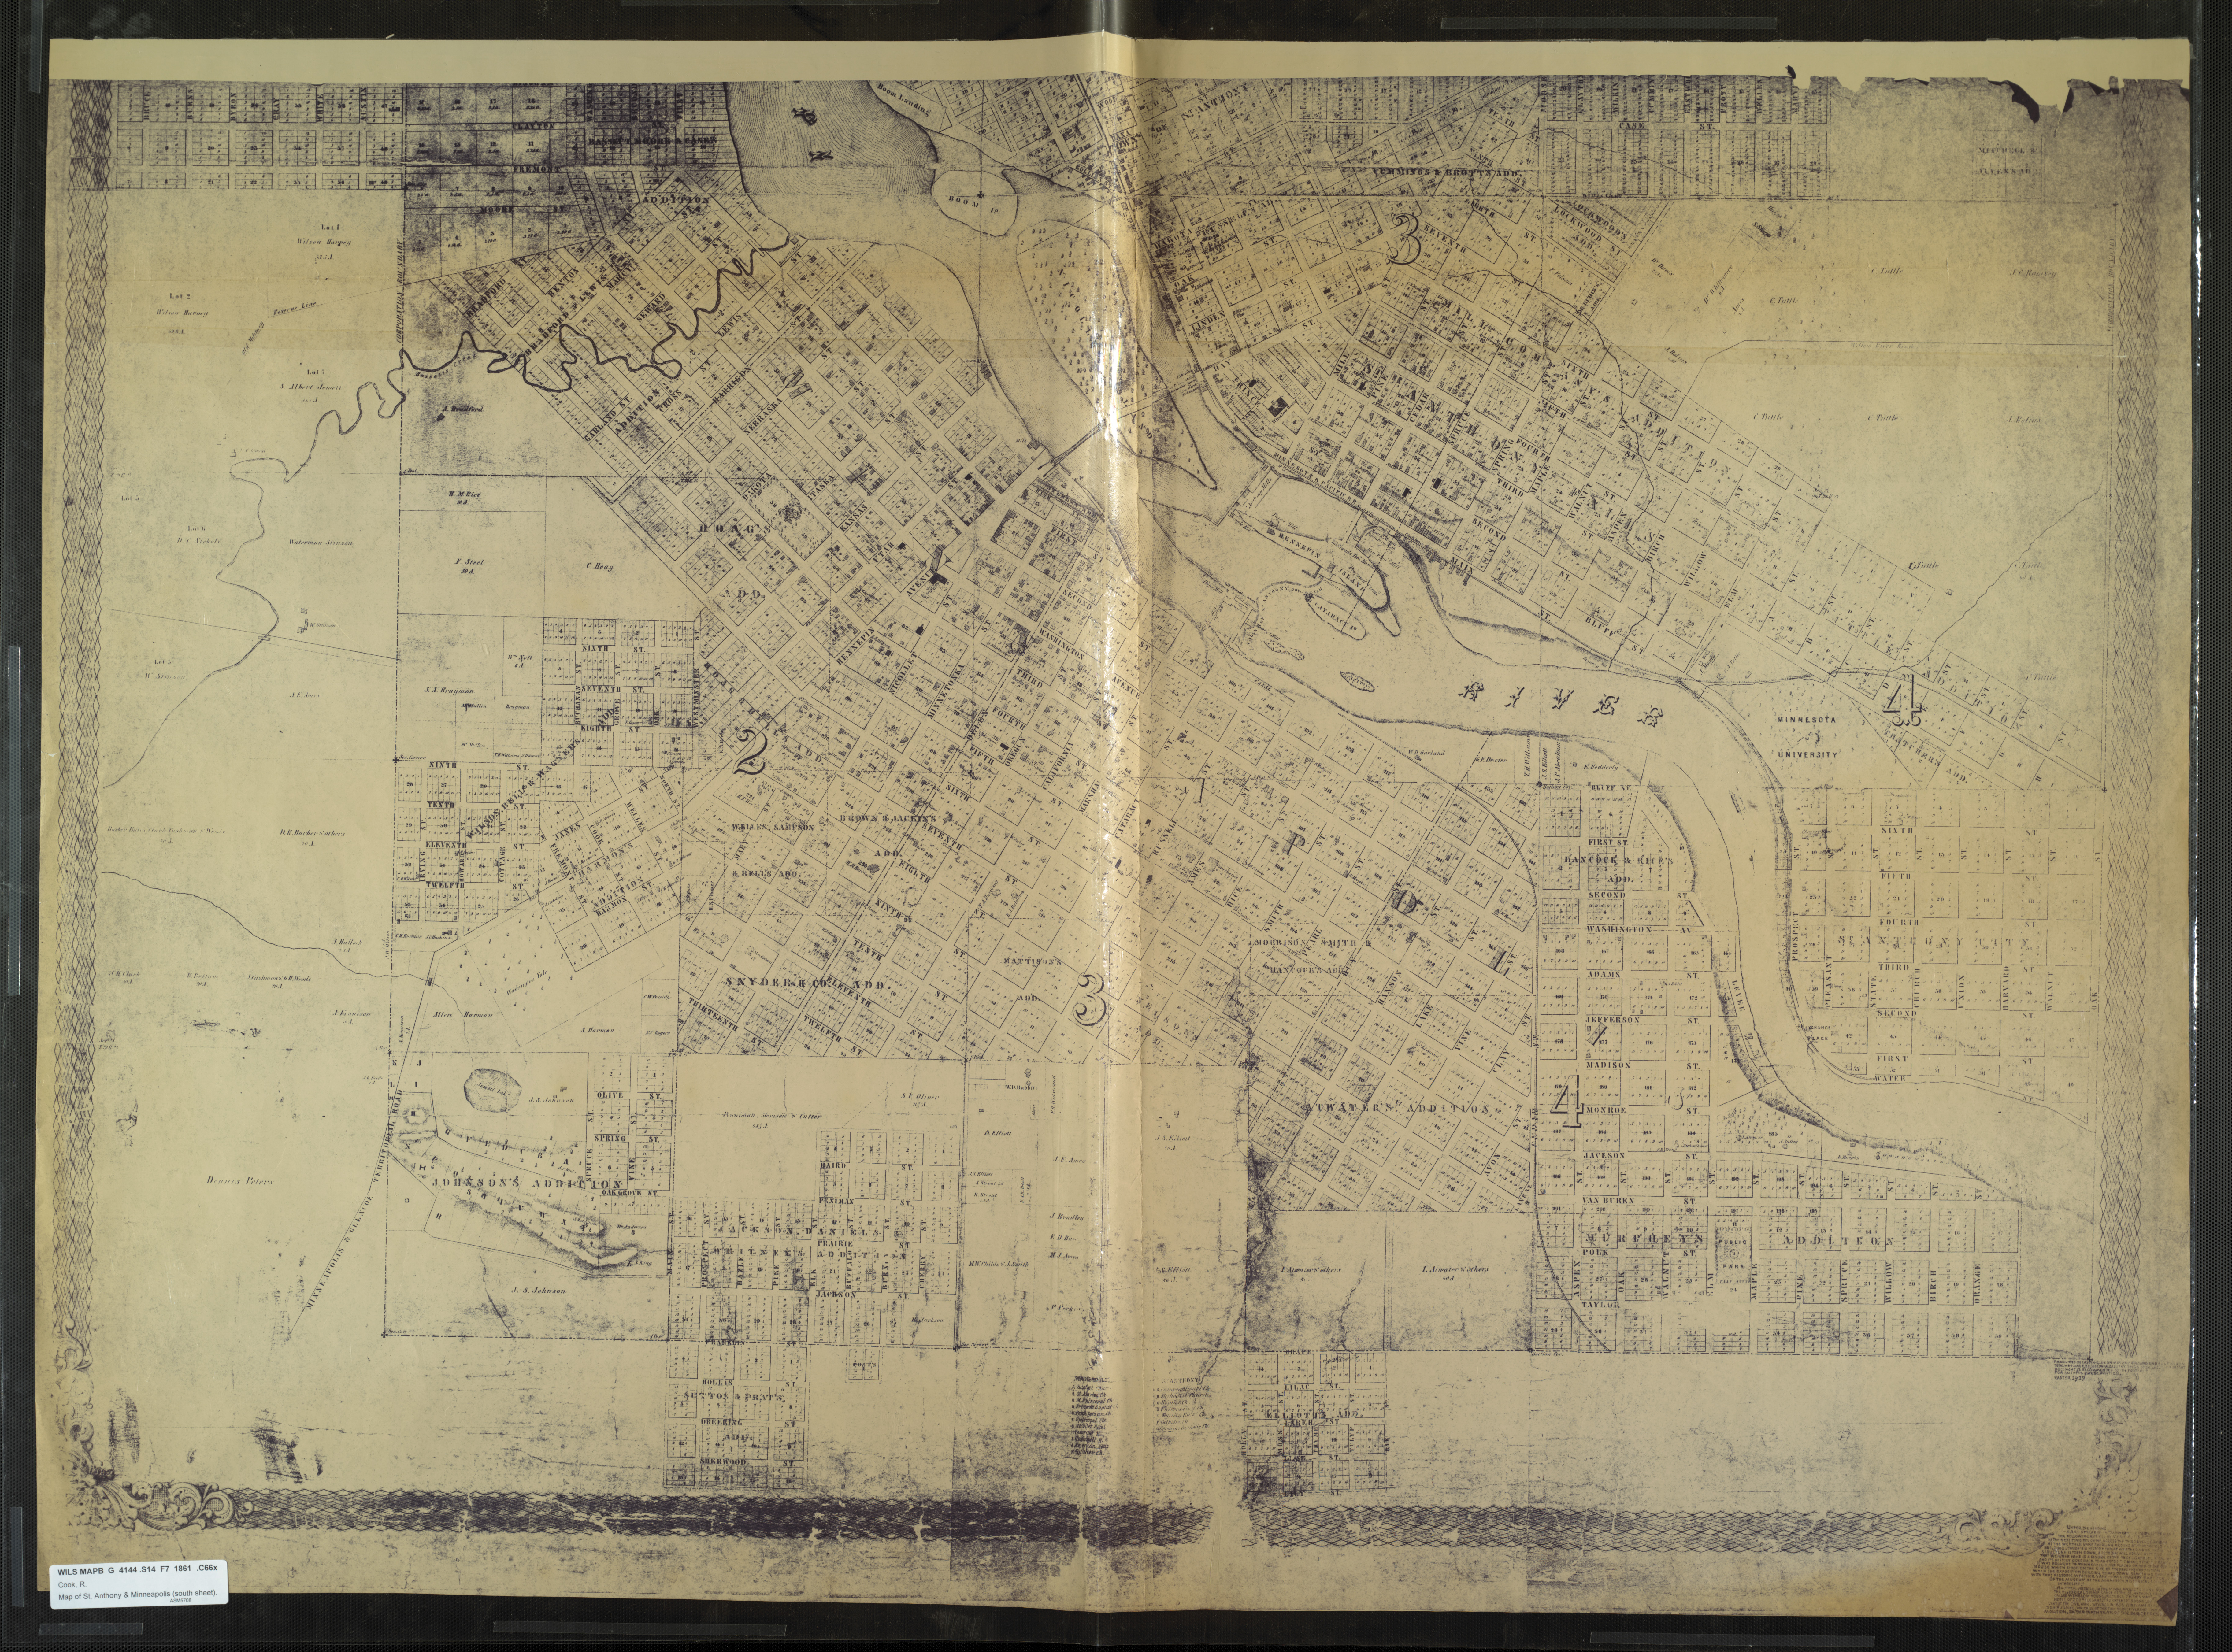 Semmi cico   woody allen szinkronok 459 - 16 1861 Map Of St Anthony And Minneapolis Cook